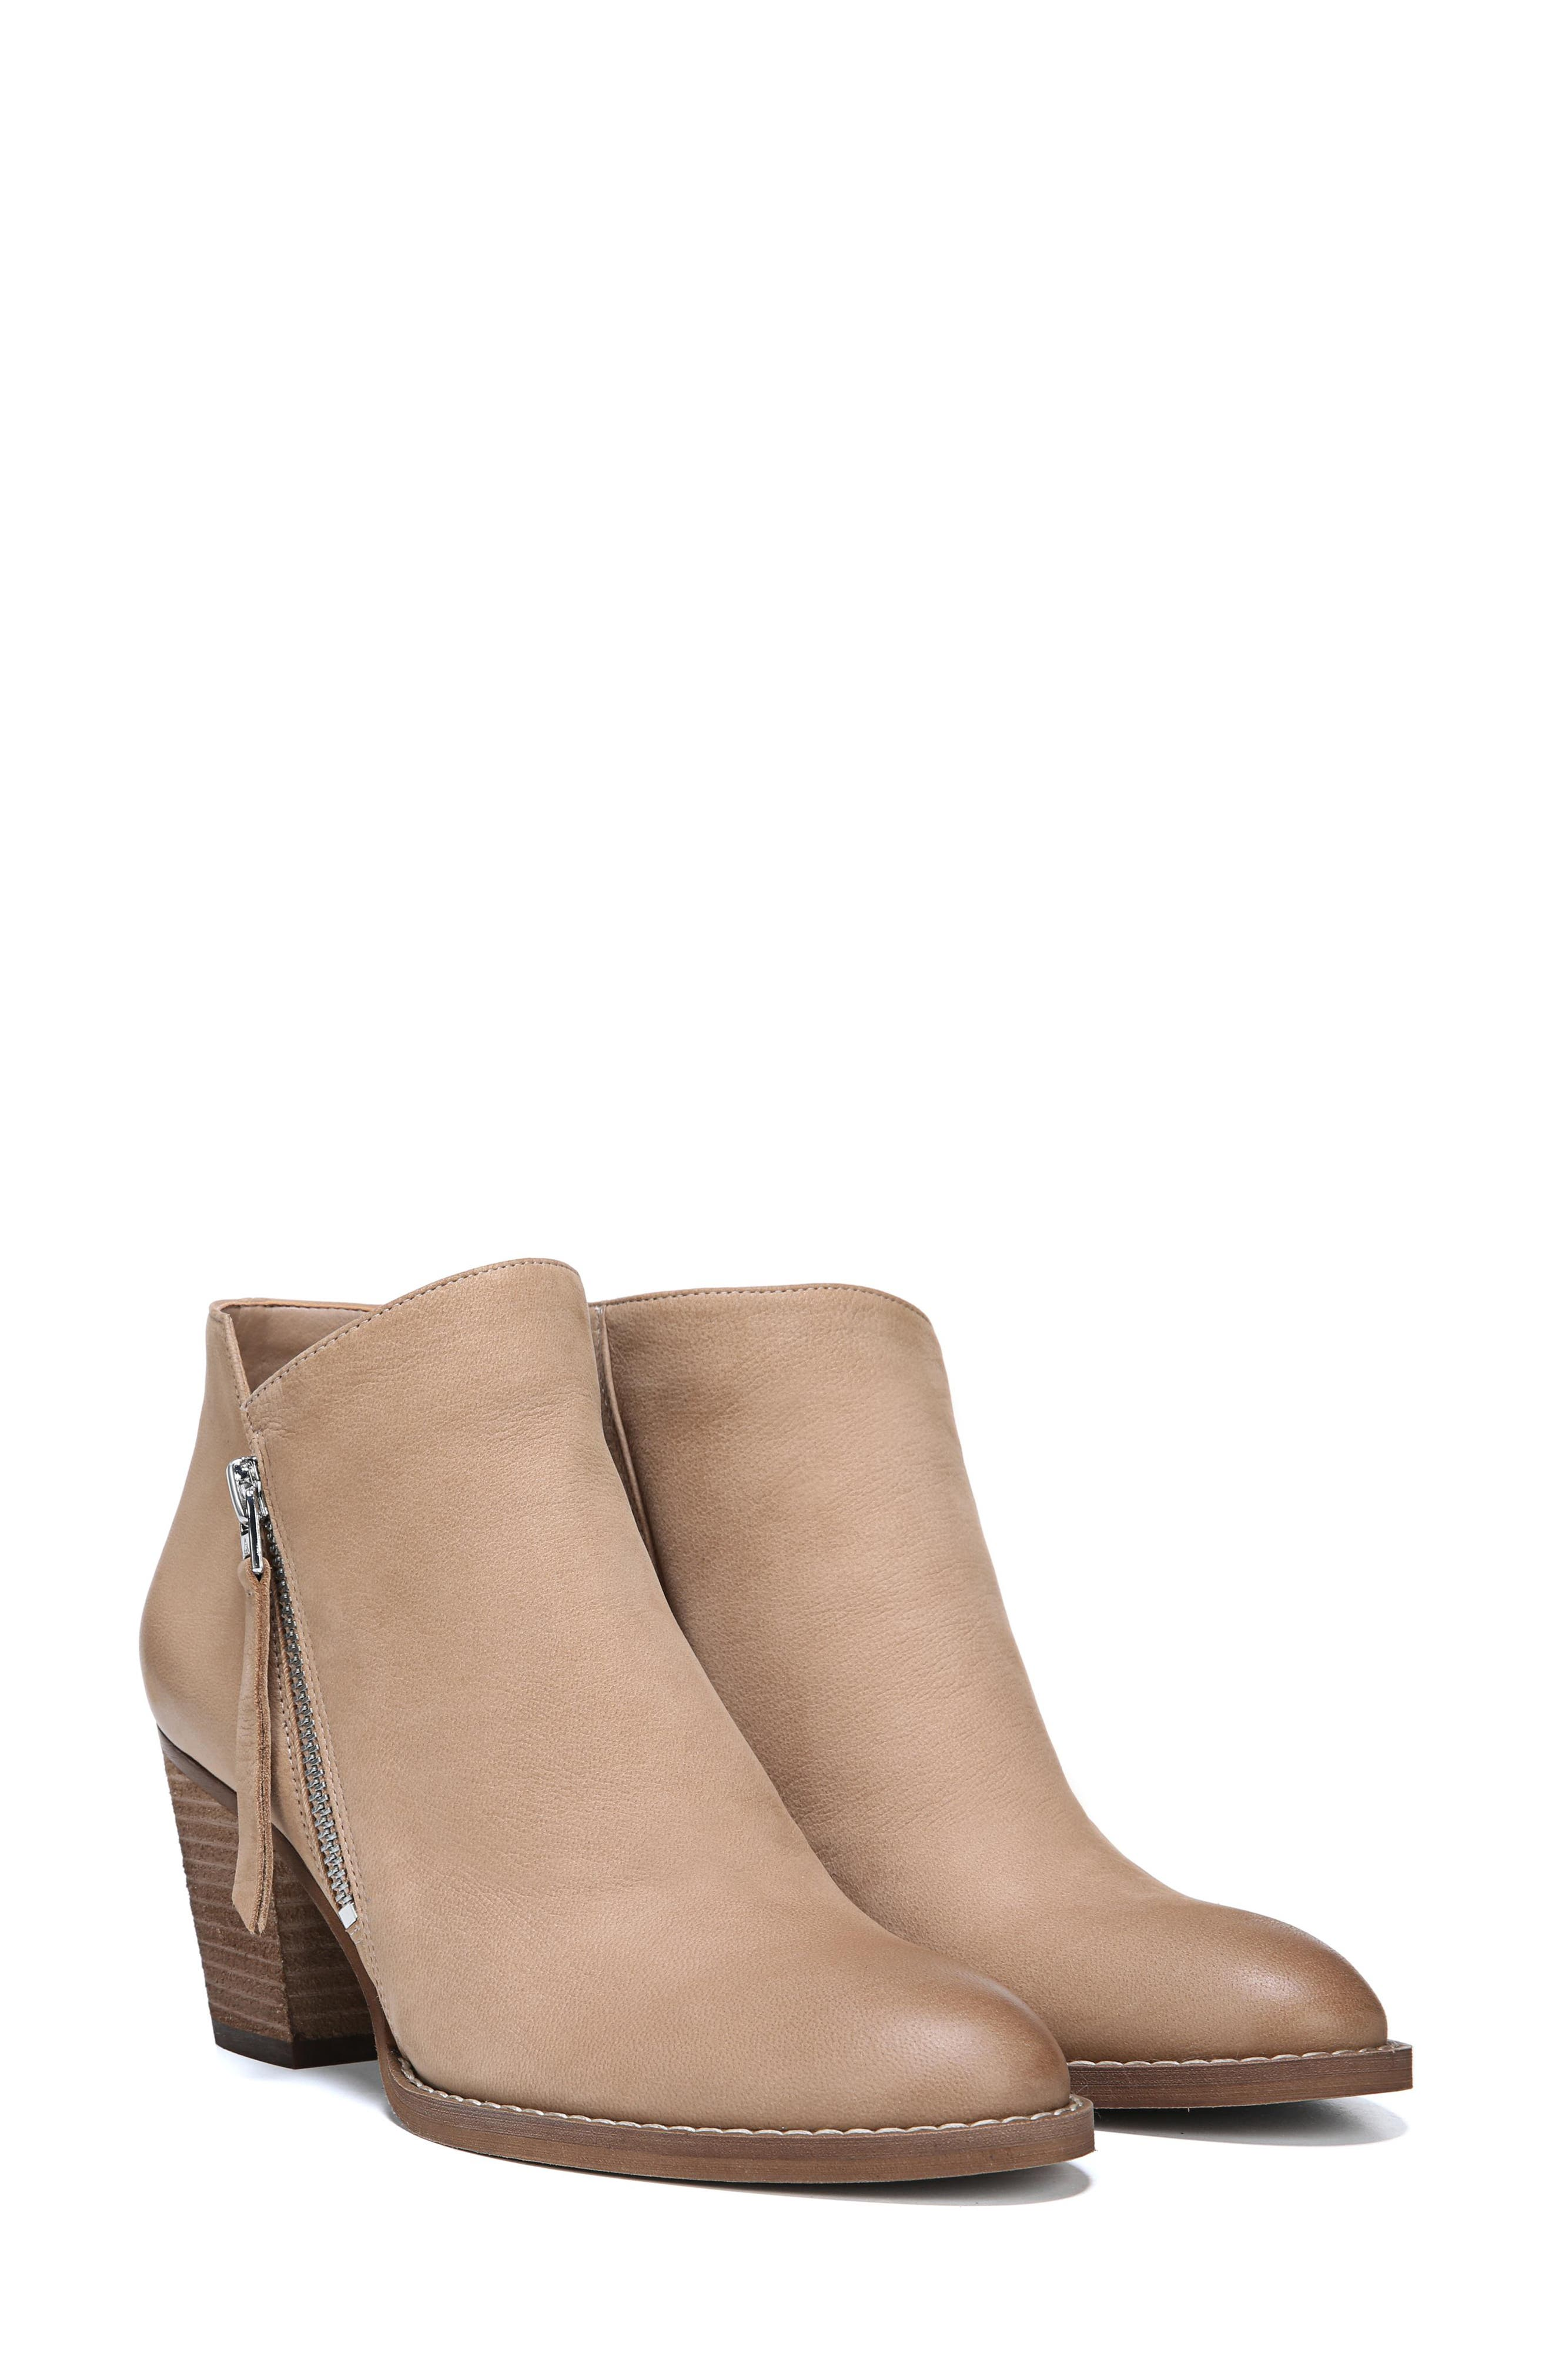 Macon Bootie,                         Main,                         color, Golden Caramel Nubuck Leather